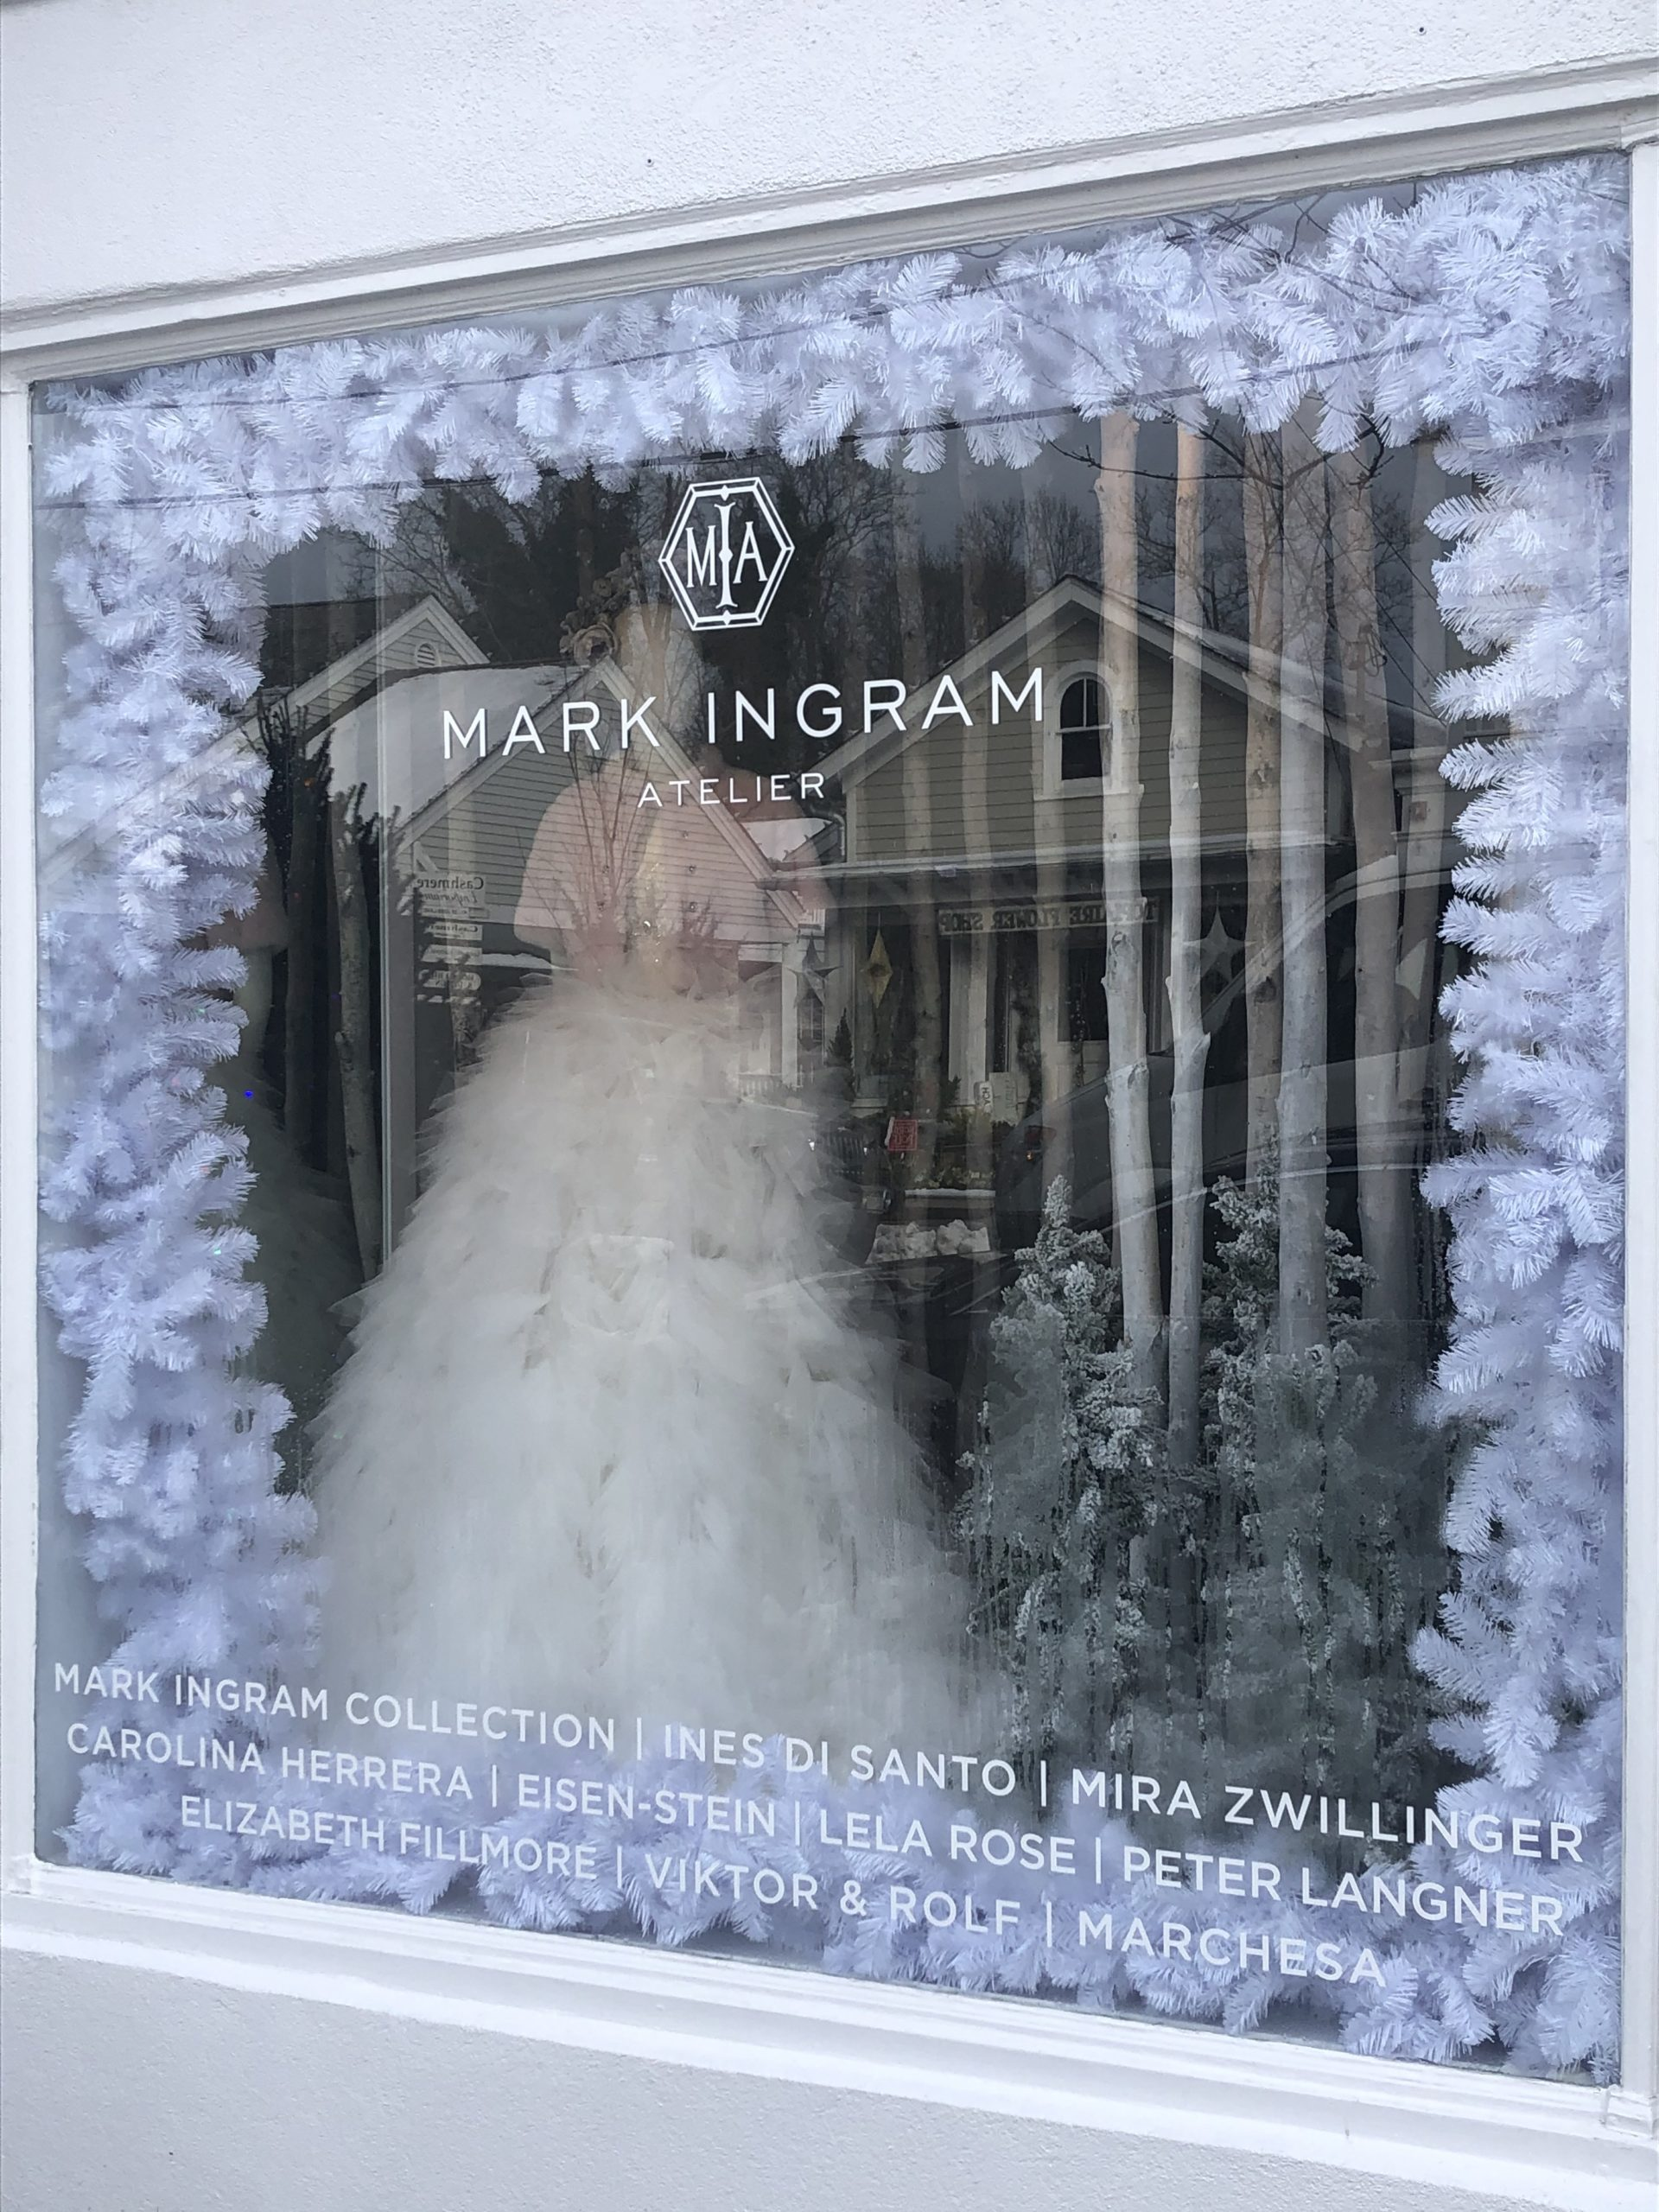 Mark Ingram Atelier took first place for window display in the Southampton Village Holiday Window Contest, followed by Topaire and Therapy. Italian restaurant Saint Ambreous won a building-only category in the annual